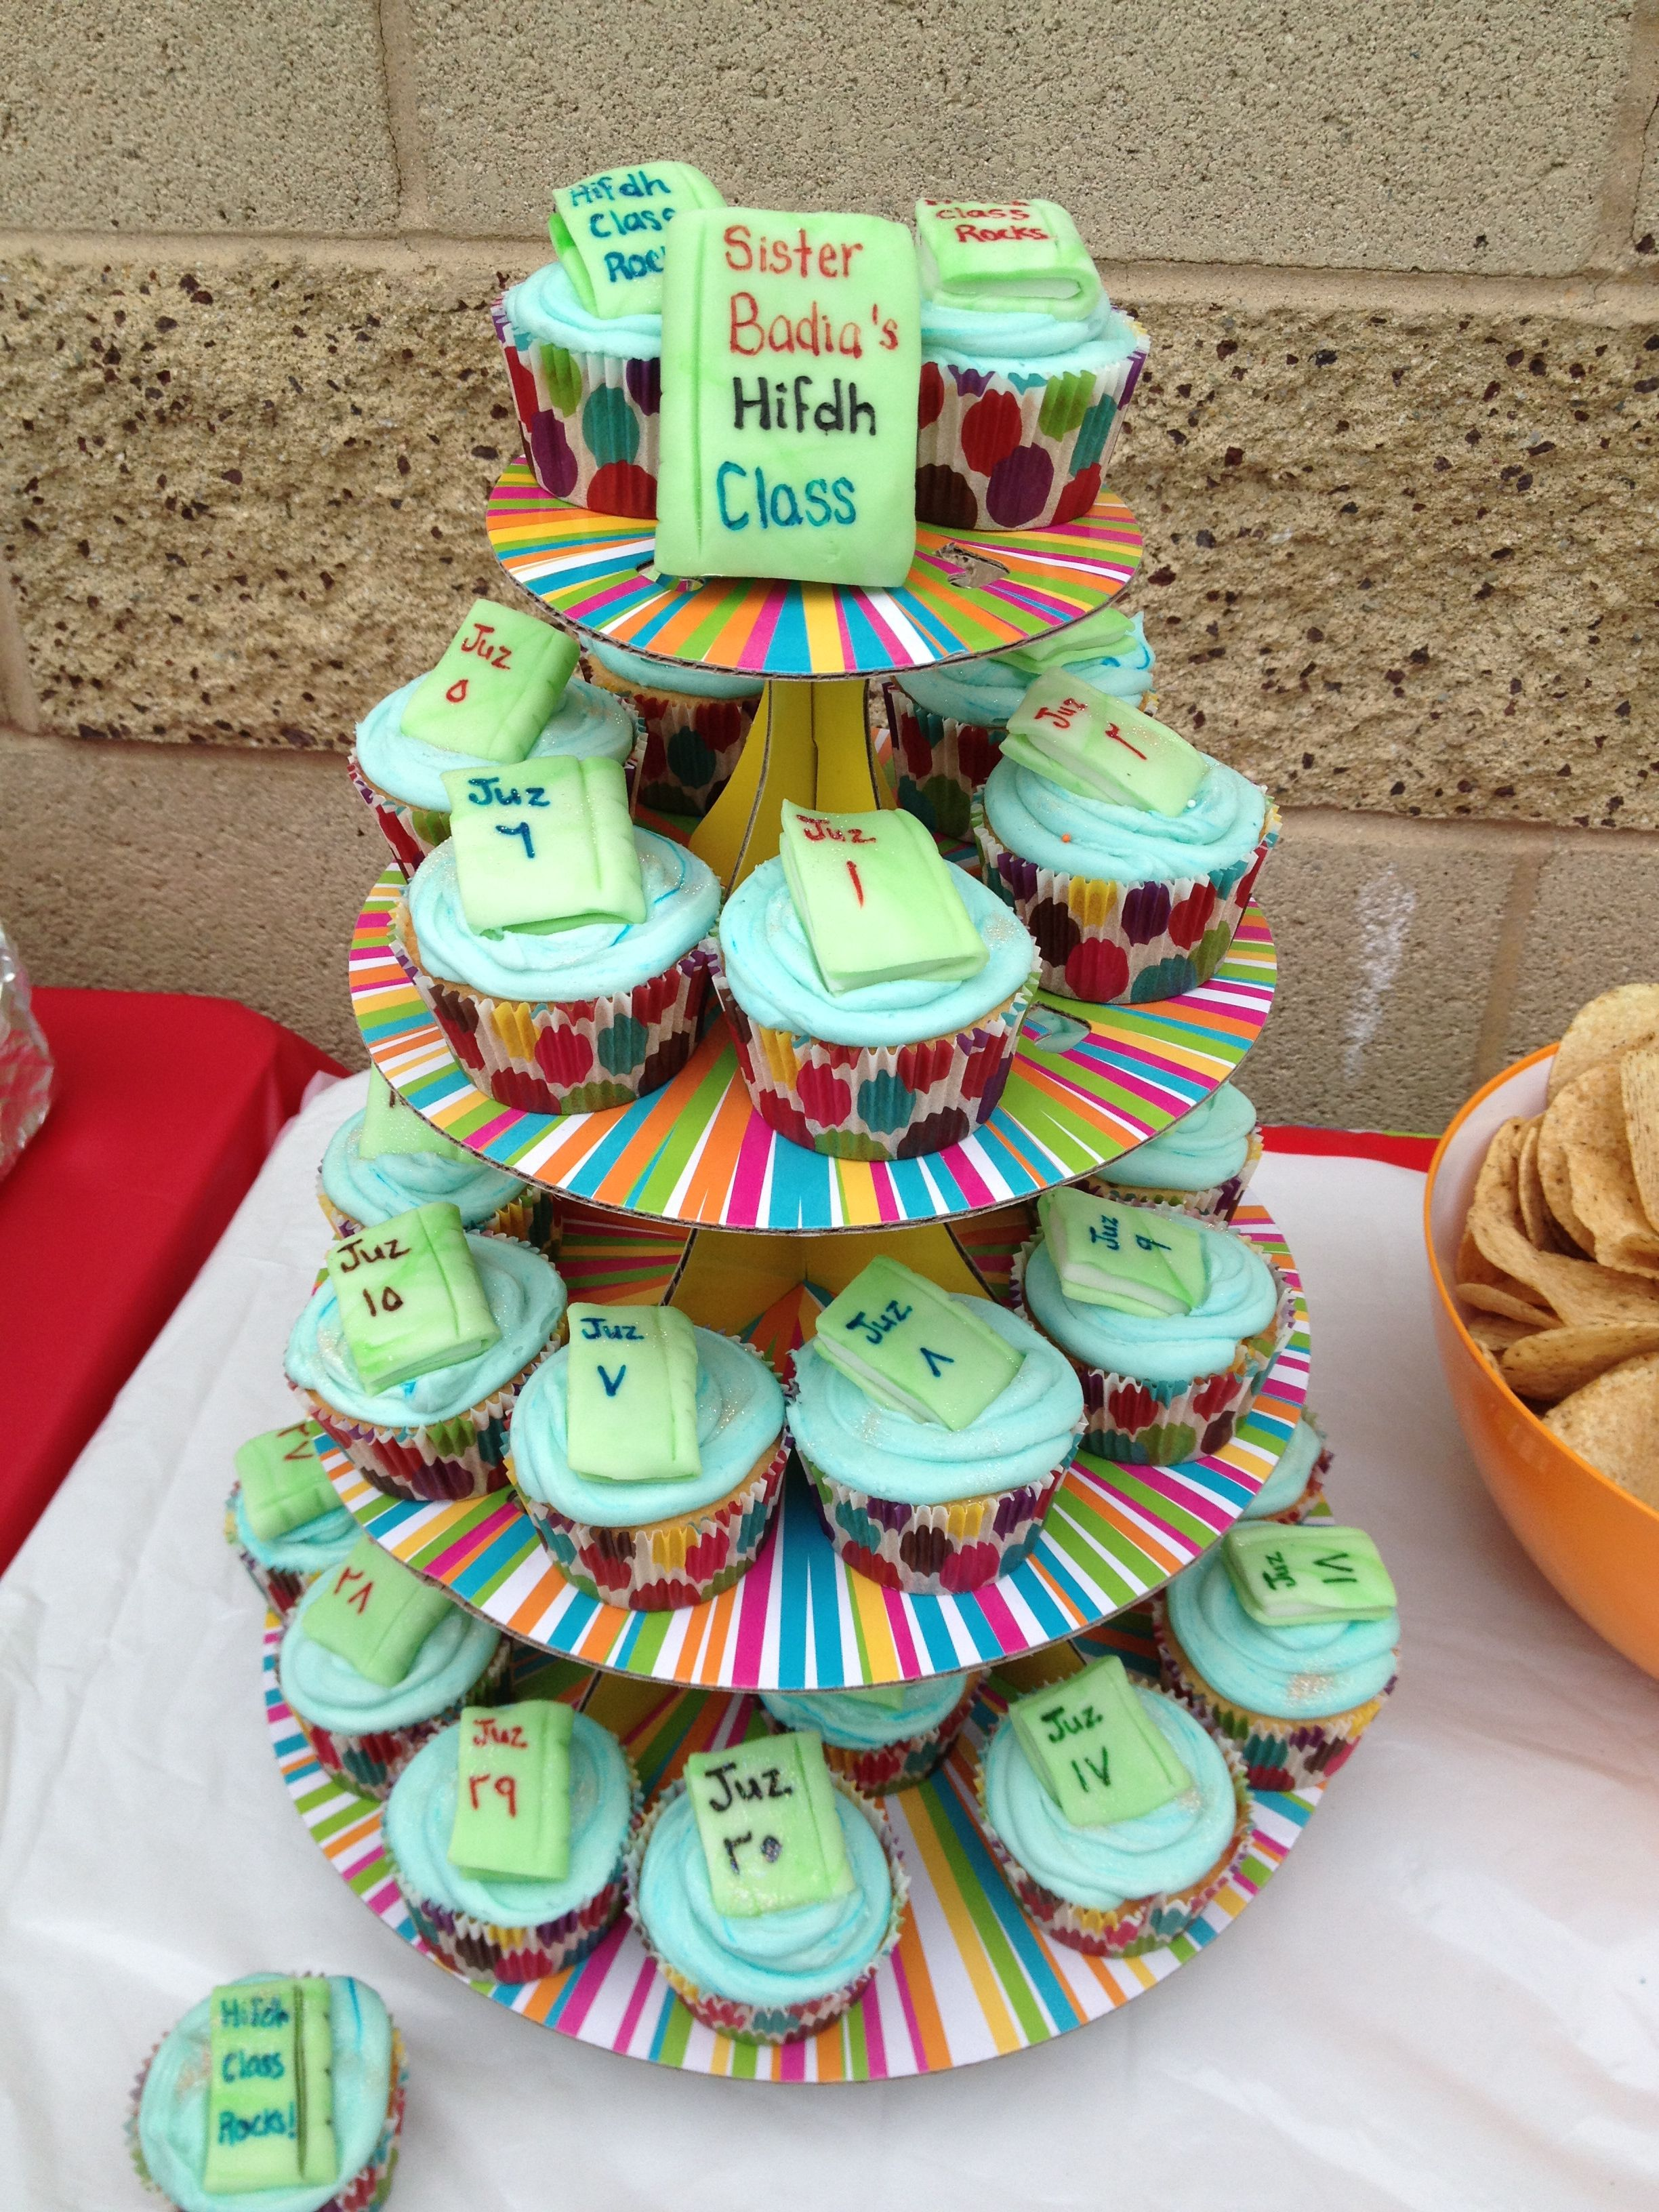 Quran Hifz Cupcakes Made For My Sons Class Hifdhjourney Hifdh